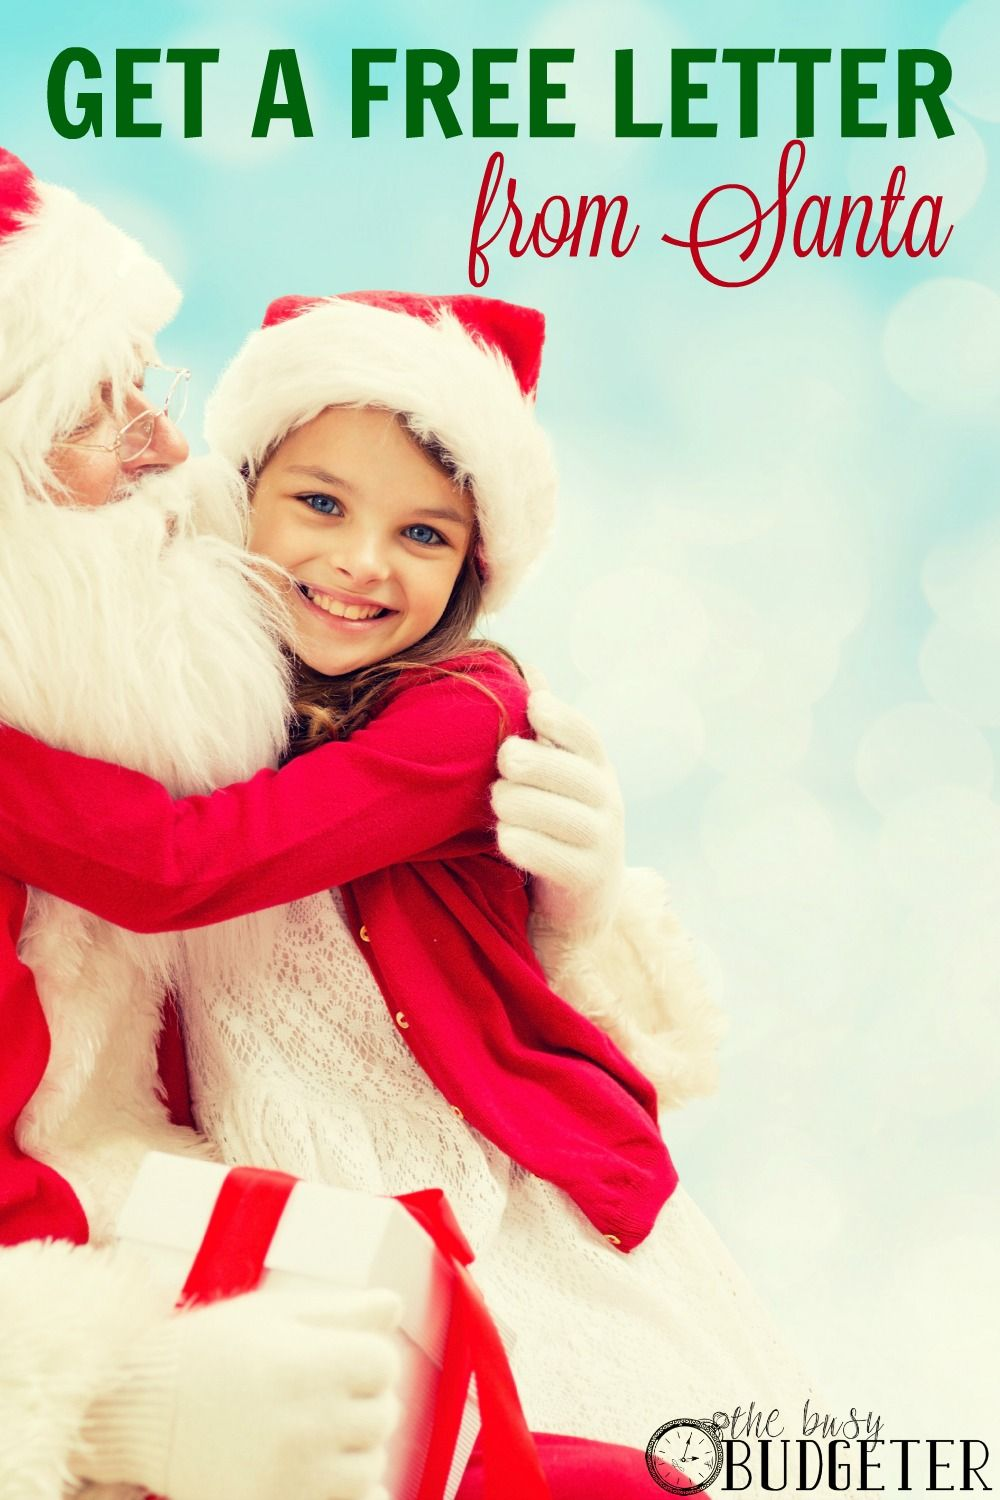 Get A Free Letter From Santa